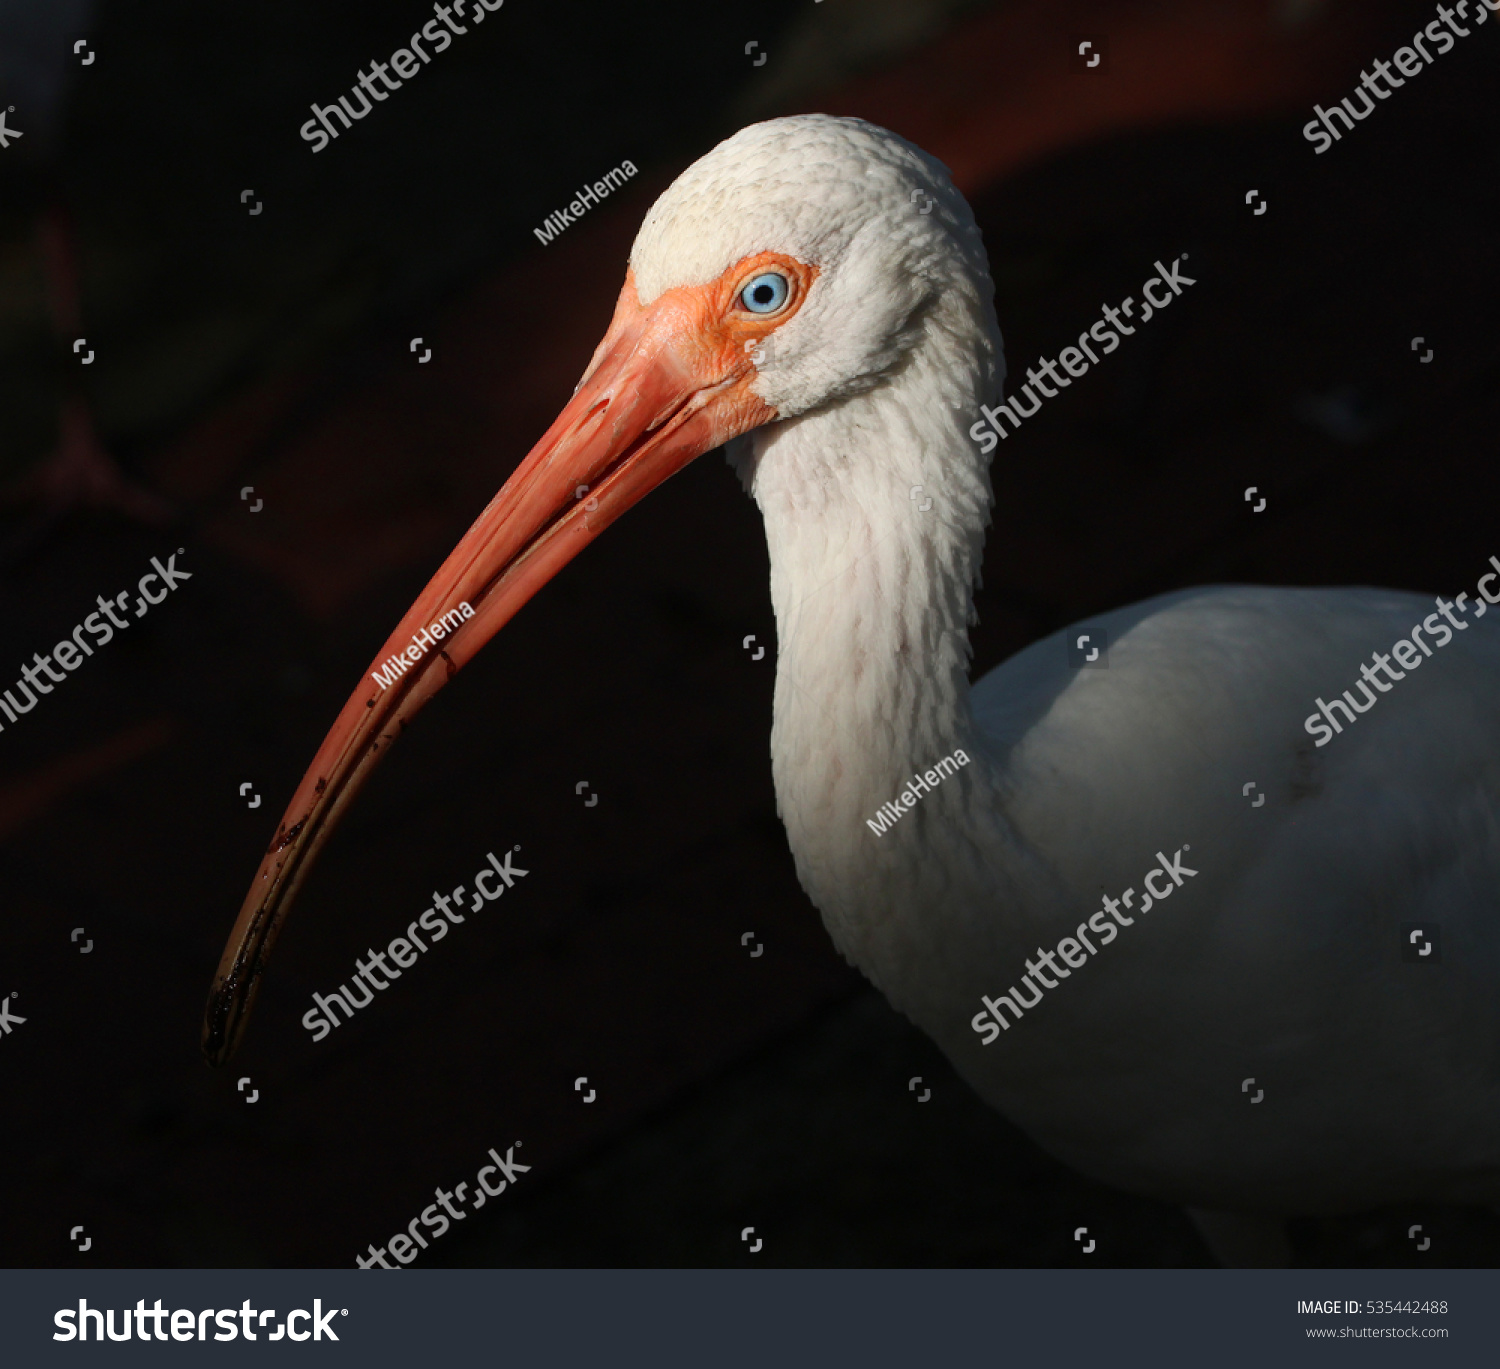 Ibis bird isolated dark background stock photo 535442488 shutterstock ibis bird isolated in a dark background buycottarizona Choice Image